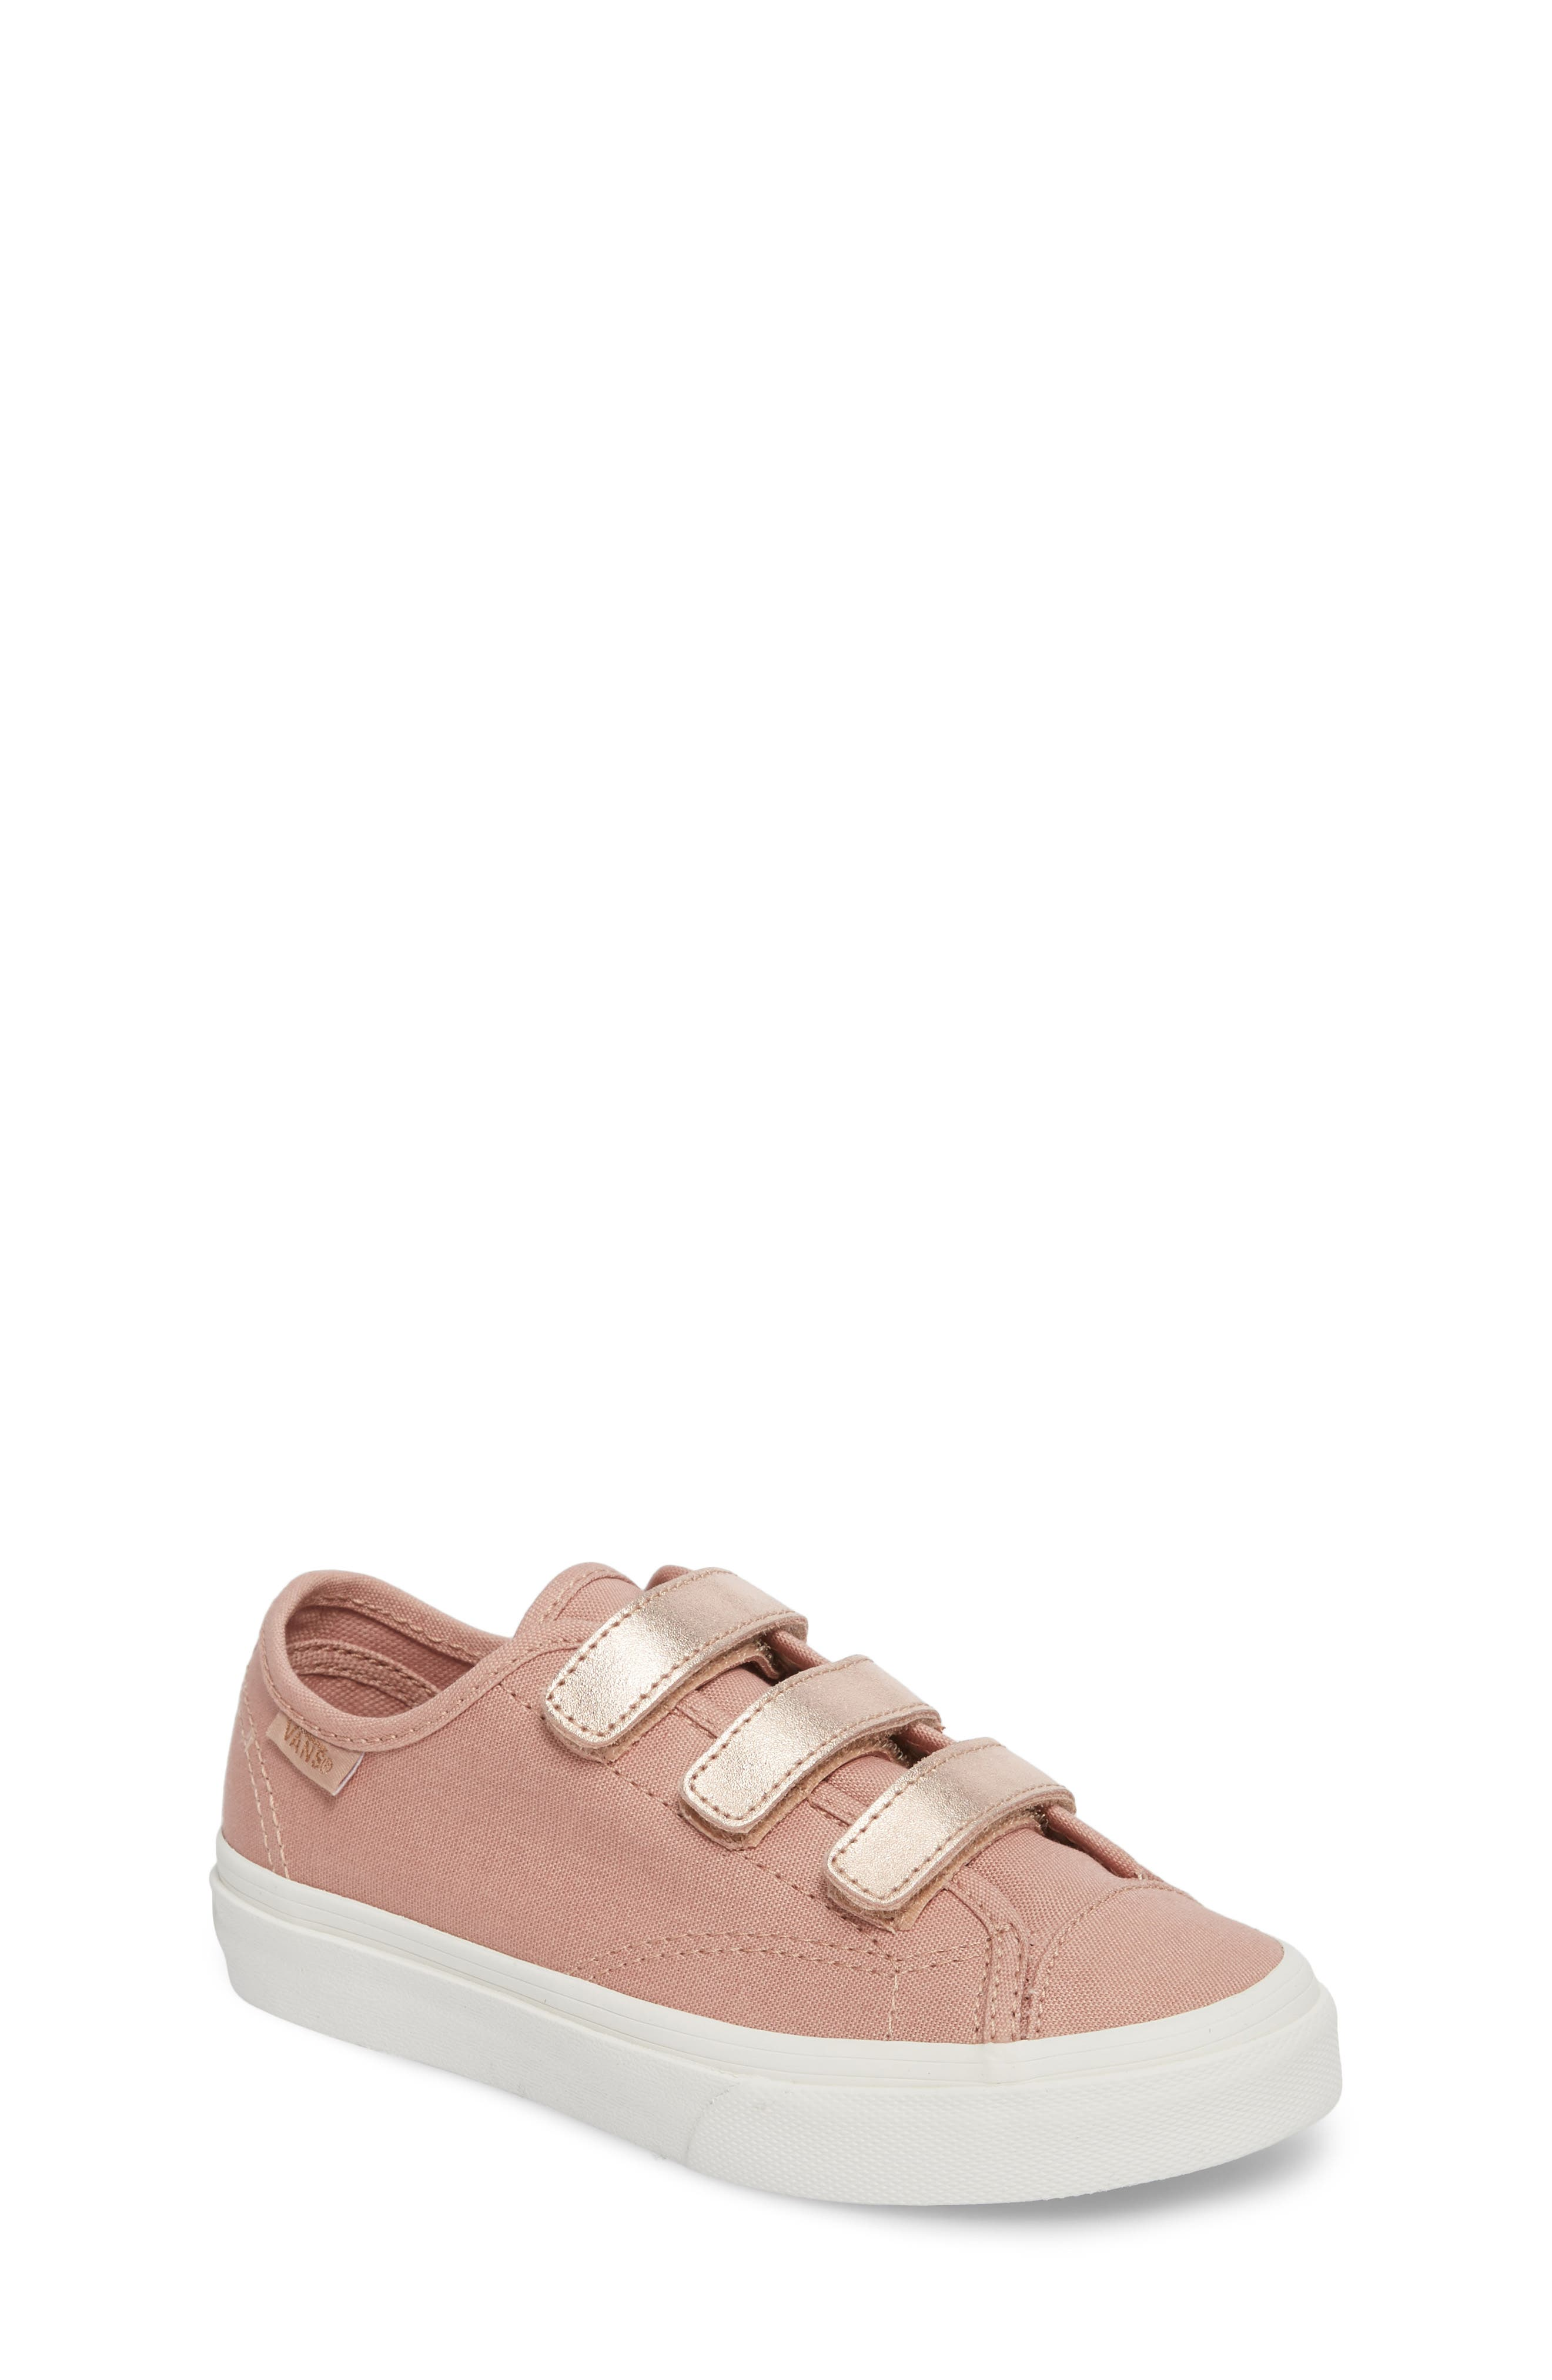 Style 23V Sneaker,                         Main,                         color, Two-Tone Rose Gold Metallic